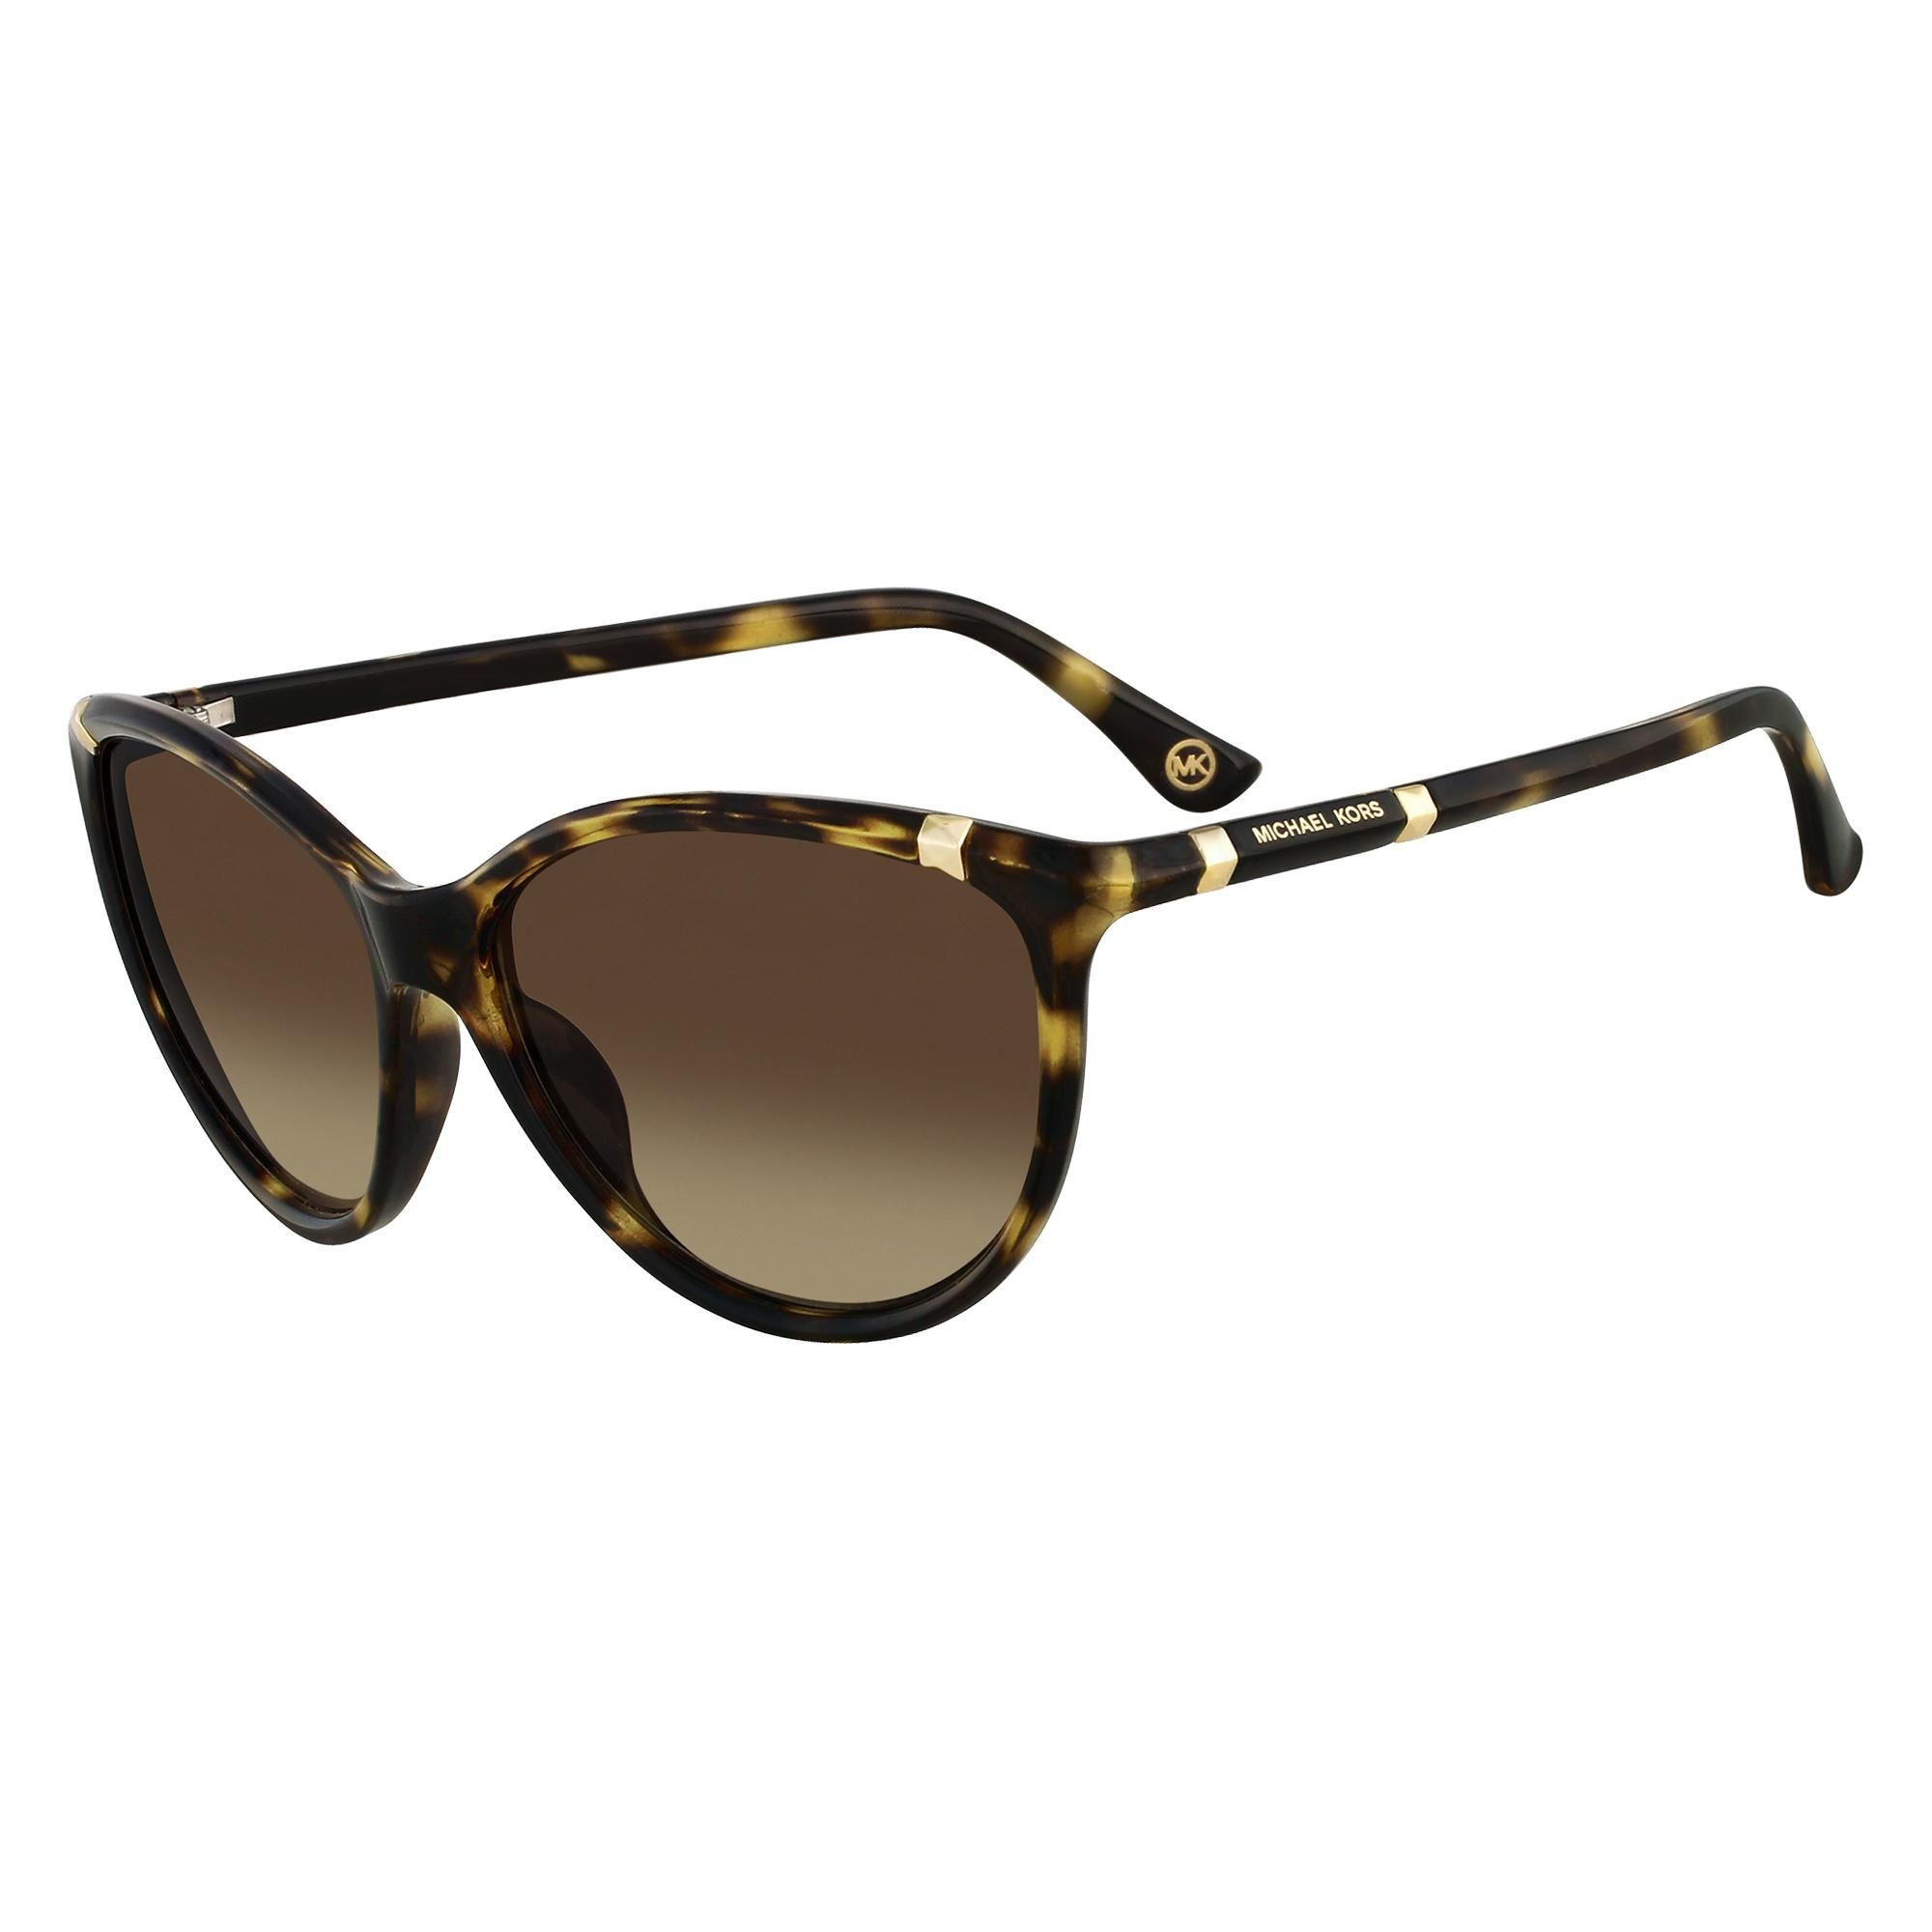 cc47671537 Michael Kors Sunglasses - M2835S 206 60-15 - I got these for myself for my  bday~ They re so pretty!